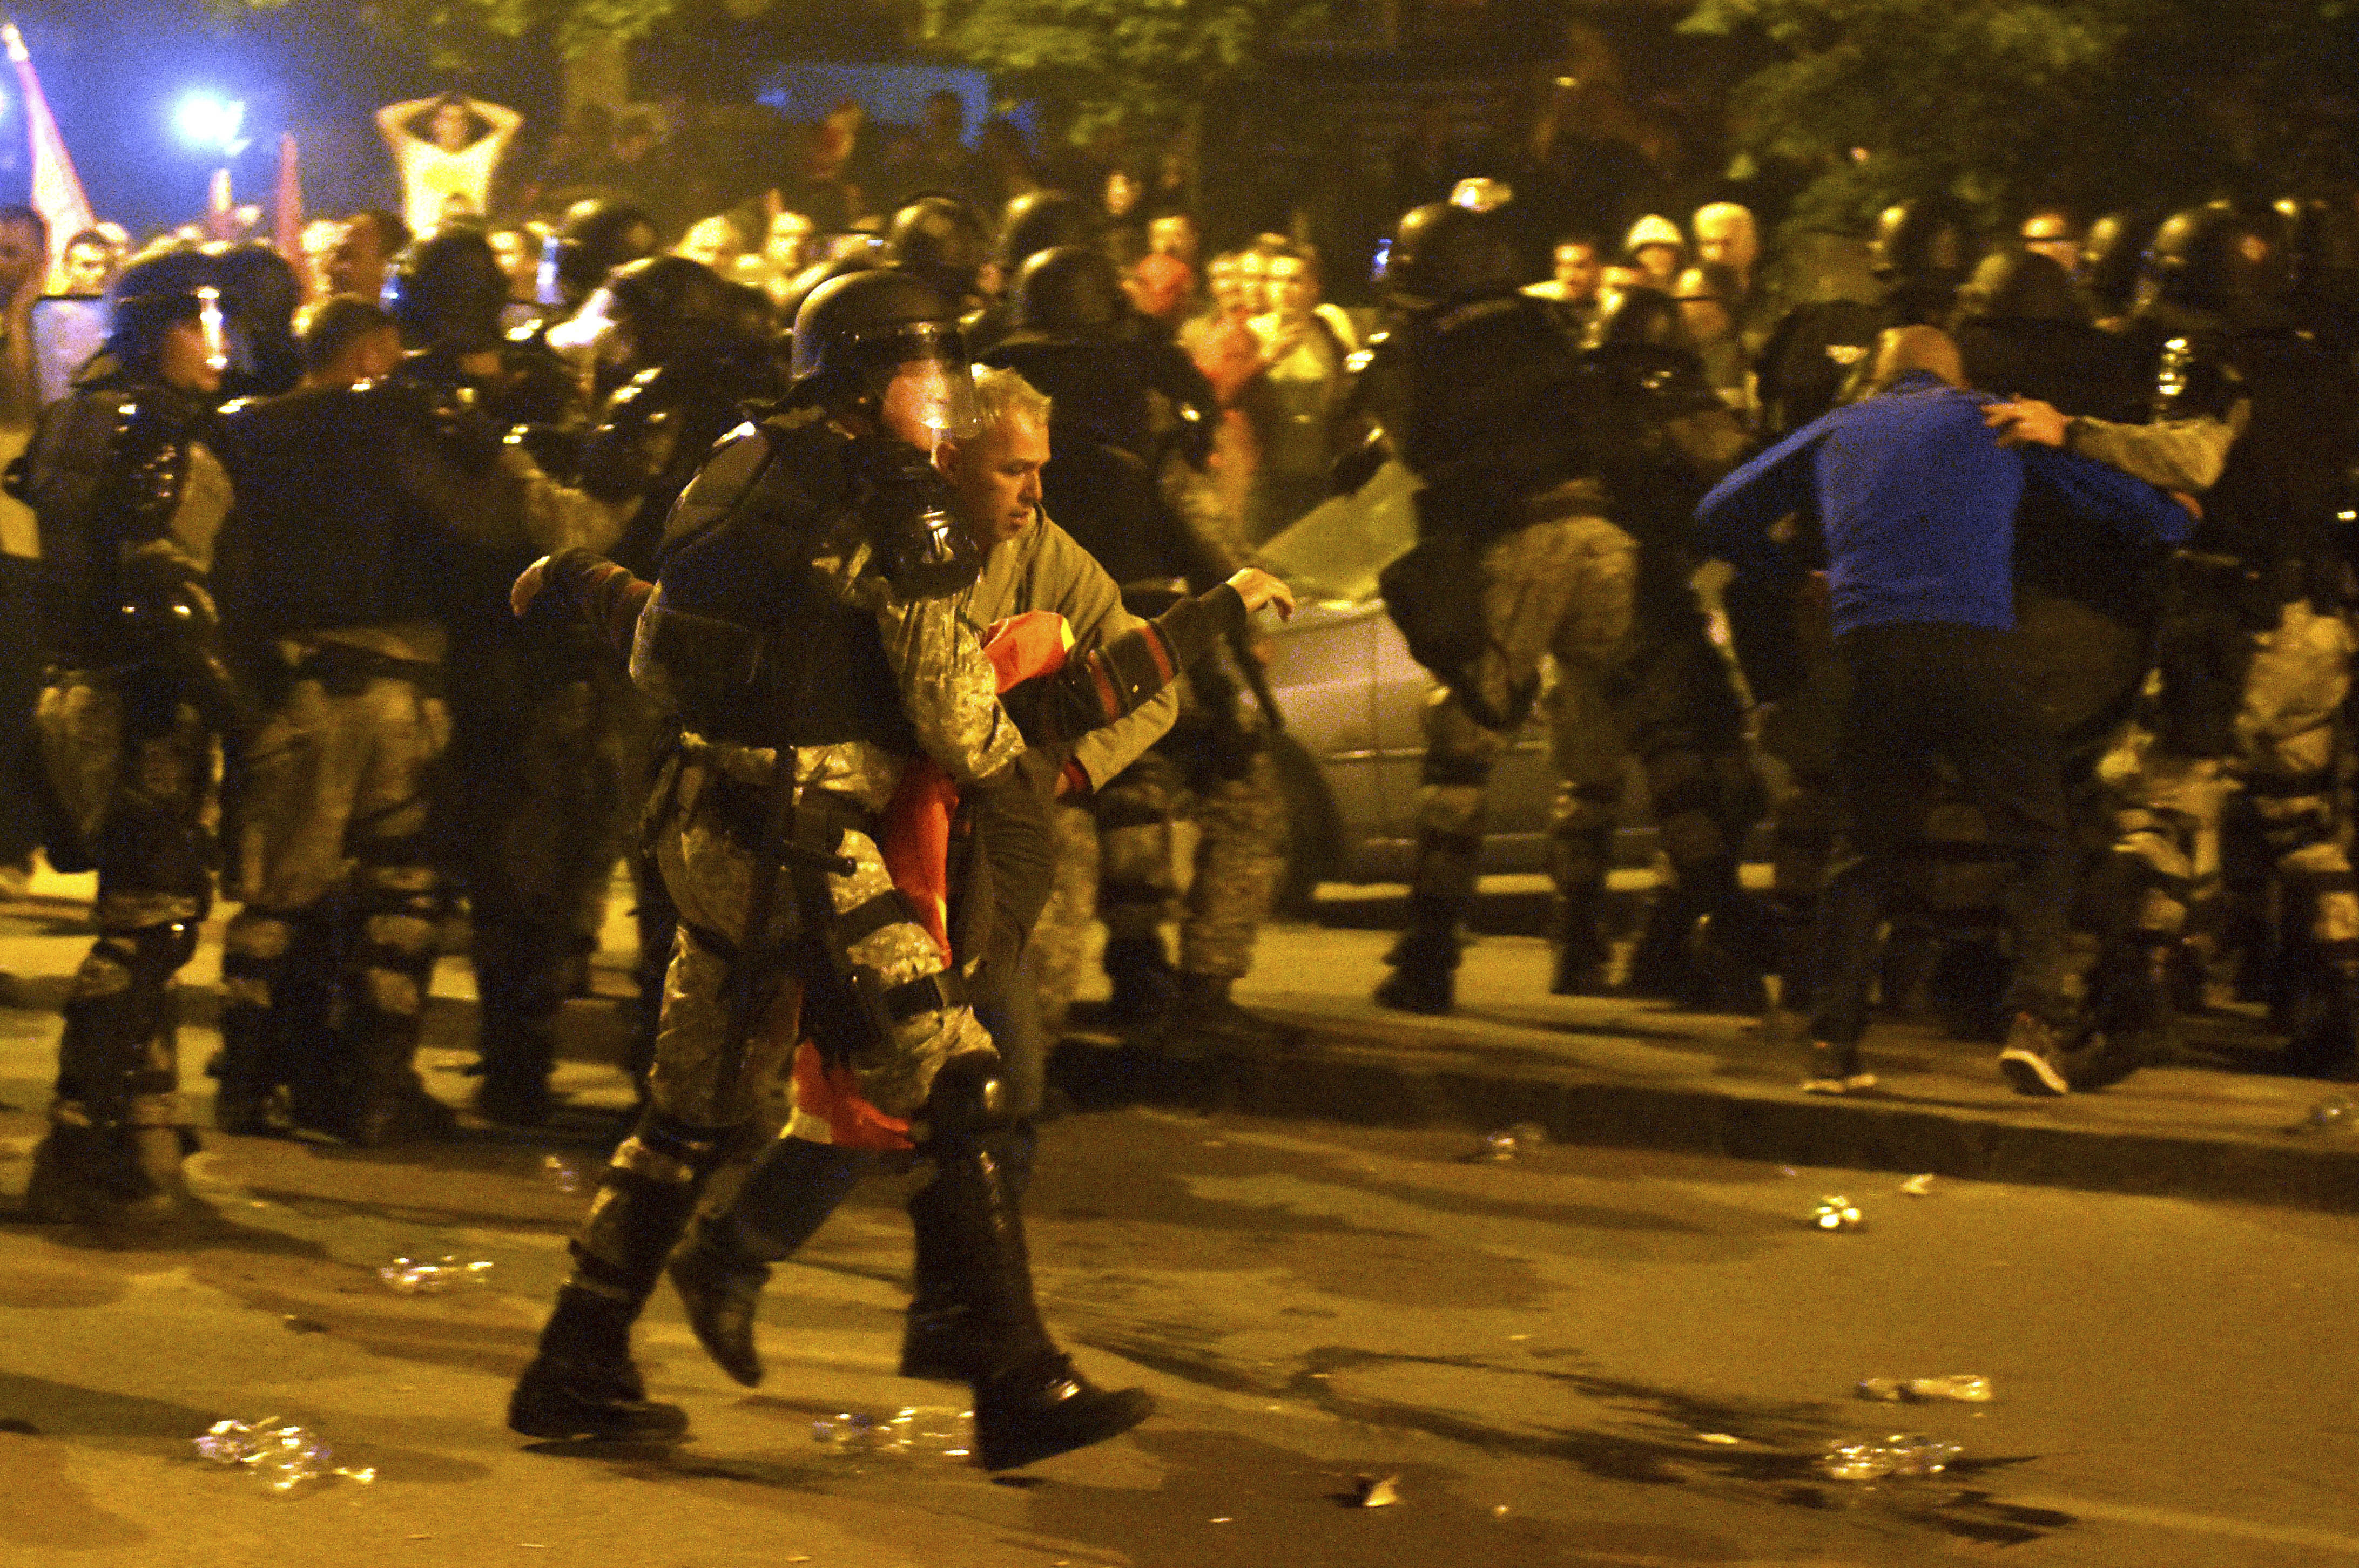 A police officer helps an injured protester during clashes in front of the parliament building in Skopje, Macedonia, Thursday, April 27, 2017. Chaos swept into Macedonia's parliament Thursday as demonstrators stormed the building and attacked lawmakers to protest the election of a new speaker despite a months-old deadlock in efforts to form a new government. (AP Photo/Dragan Perkovski)